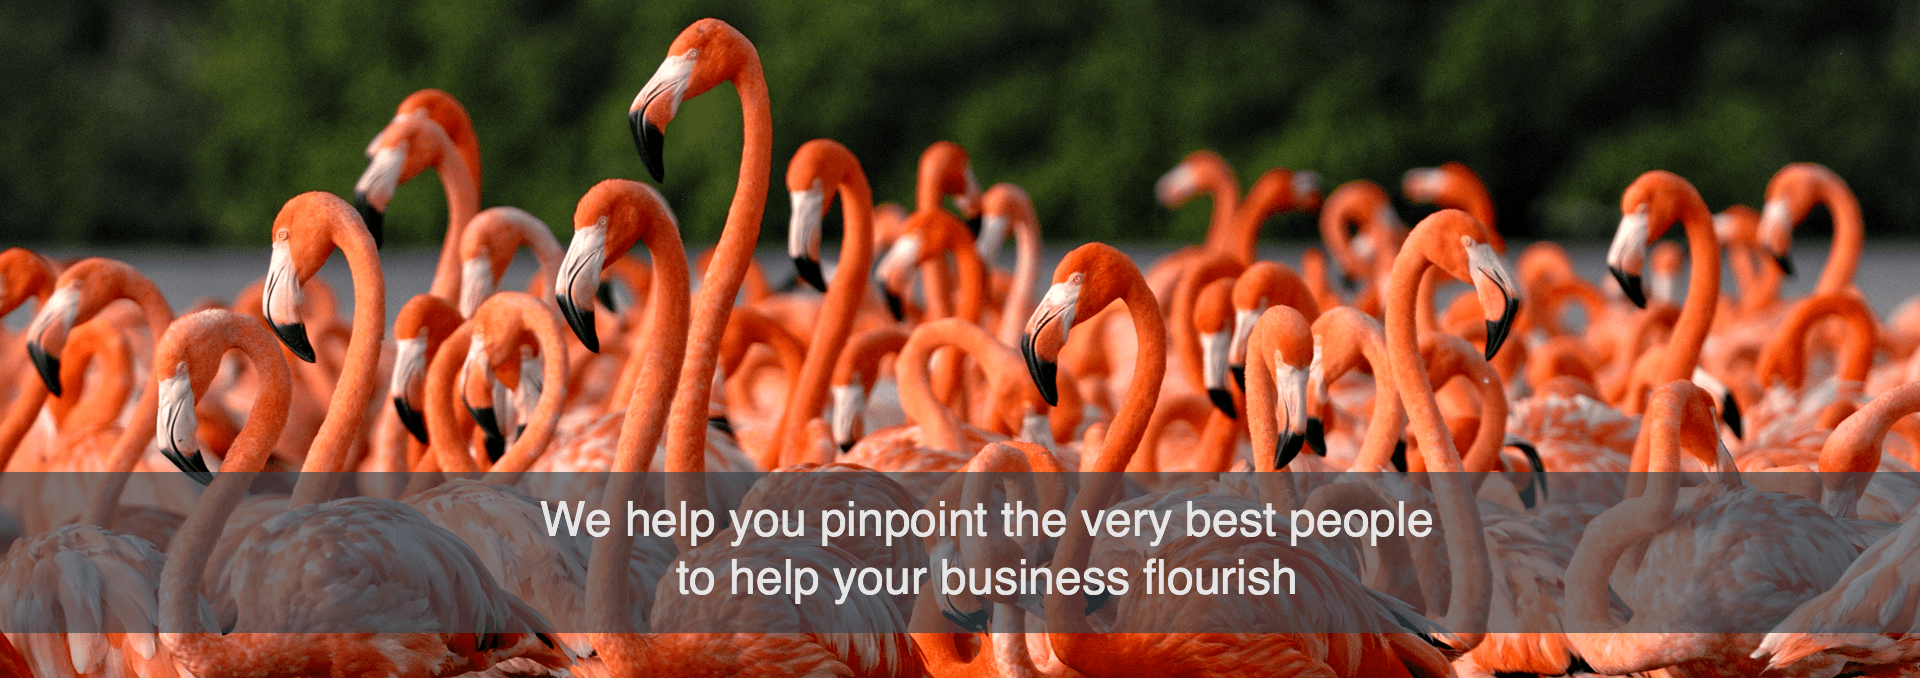 Group of flamingos pinpoint the best people